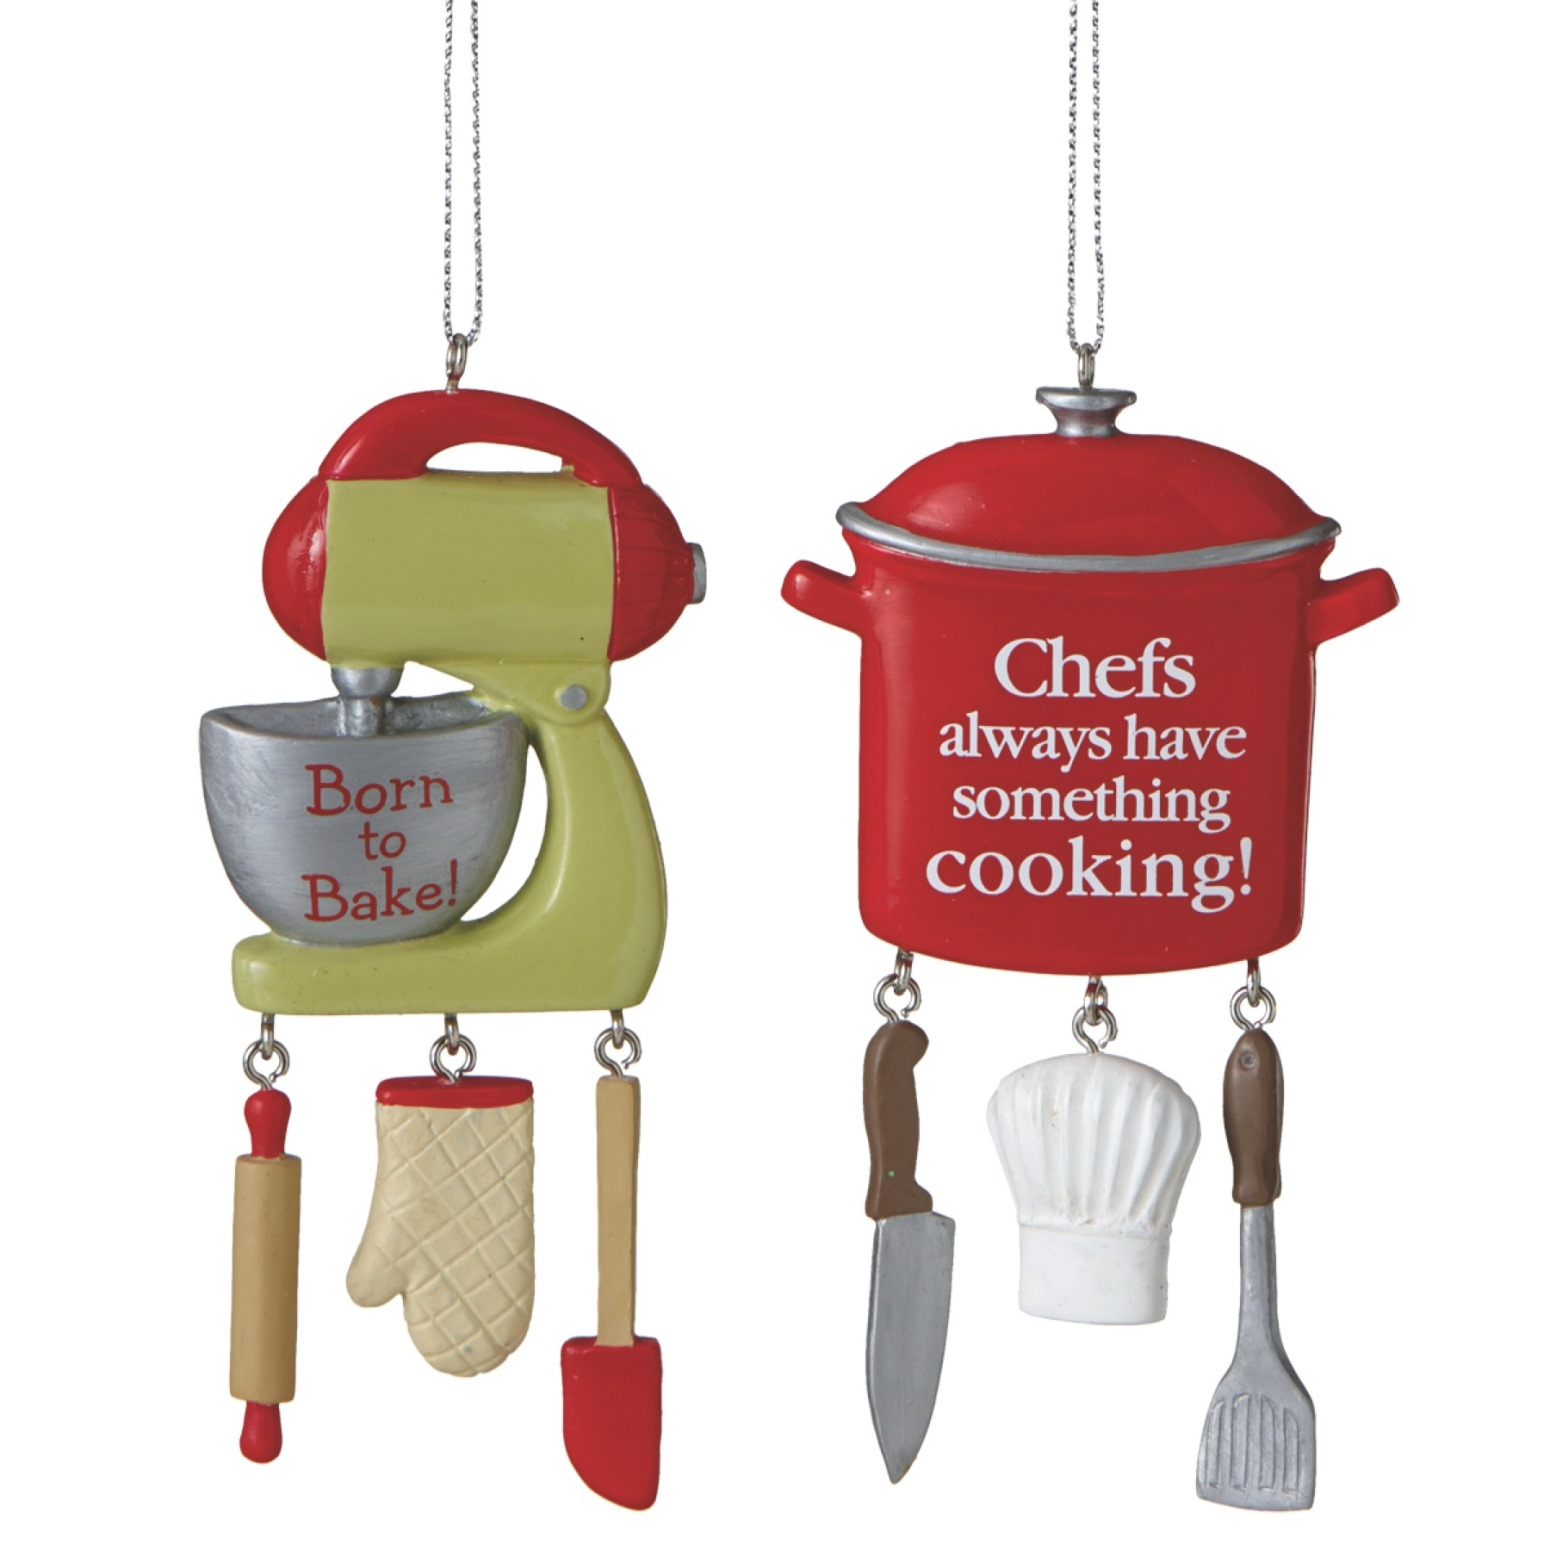 Chef Red Cooking Pot and Baker Green Mixer Christmas Holiday Ornaments Set of 2